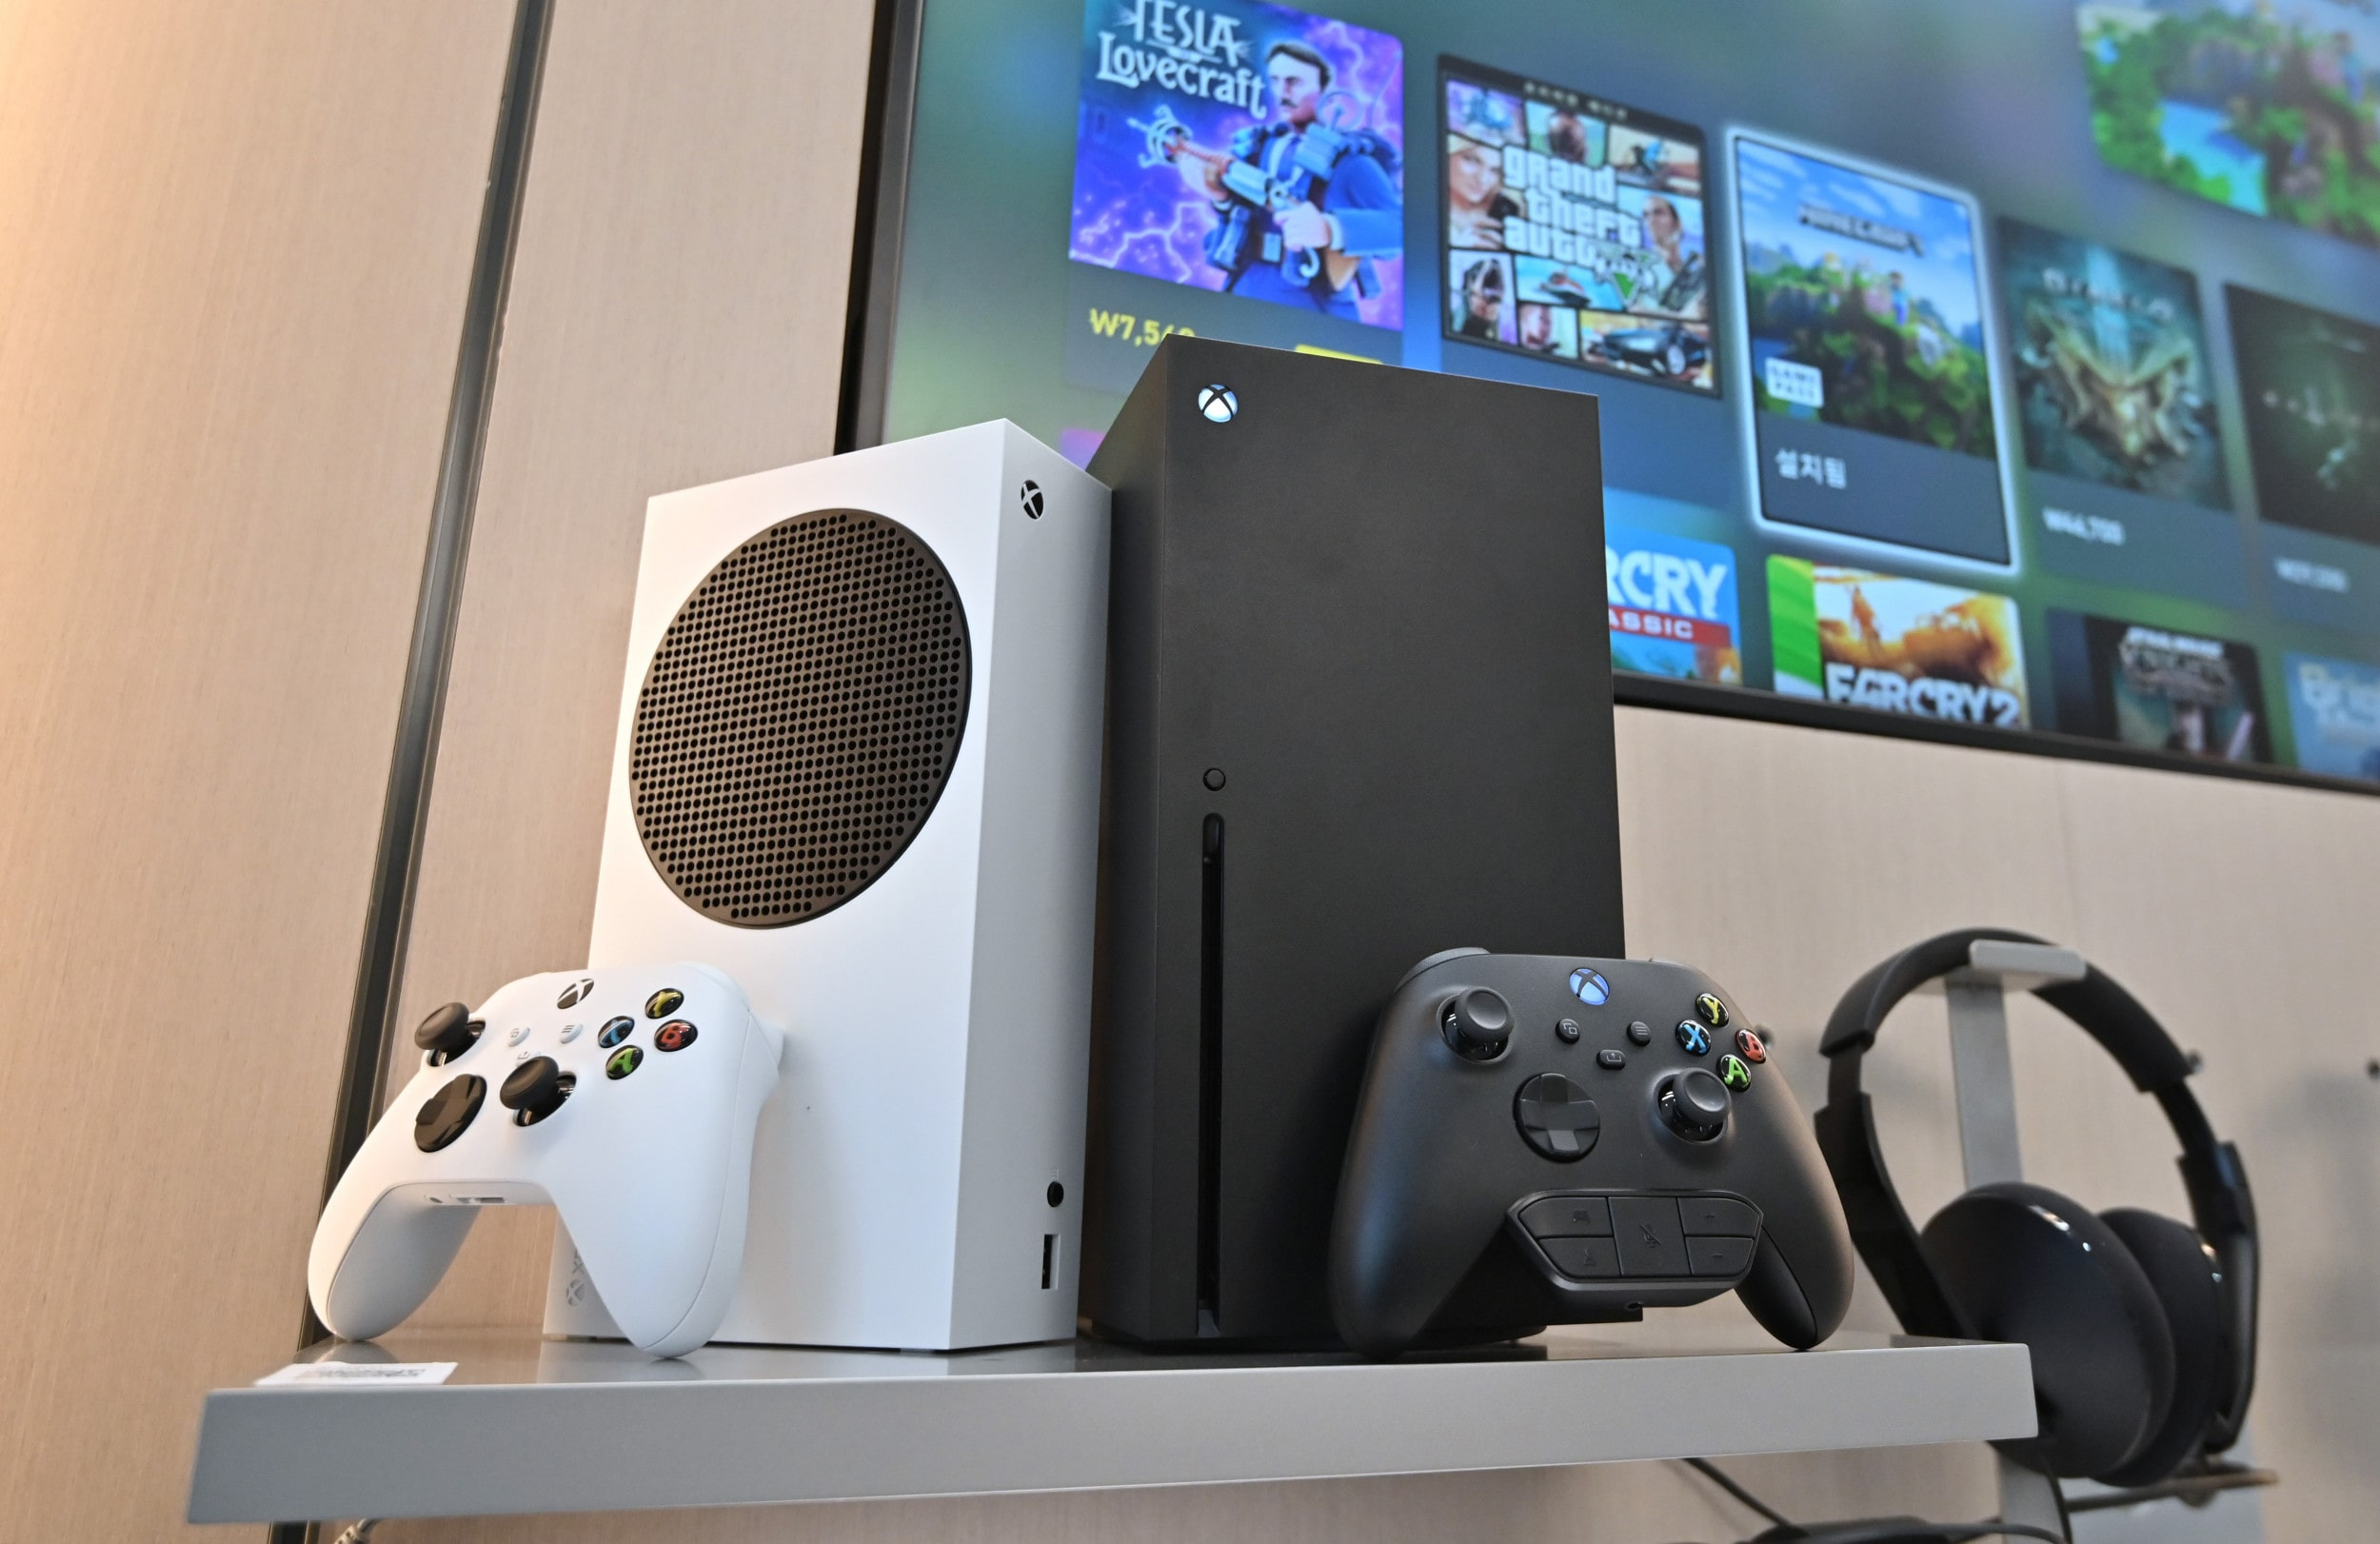 where to buy next generation playing device